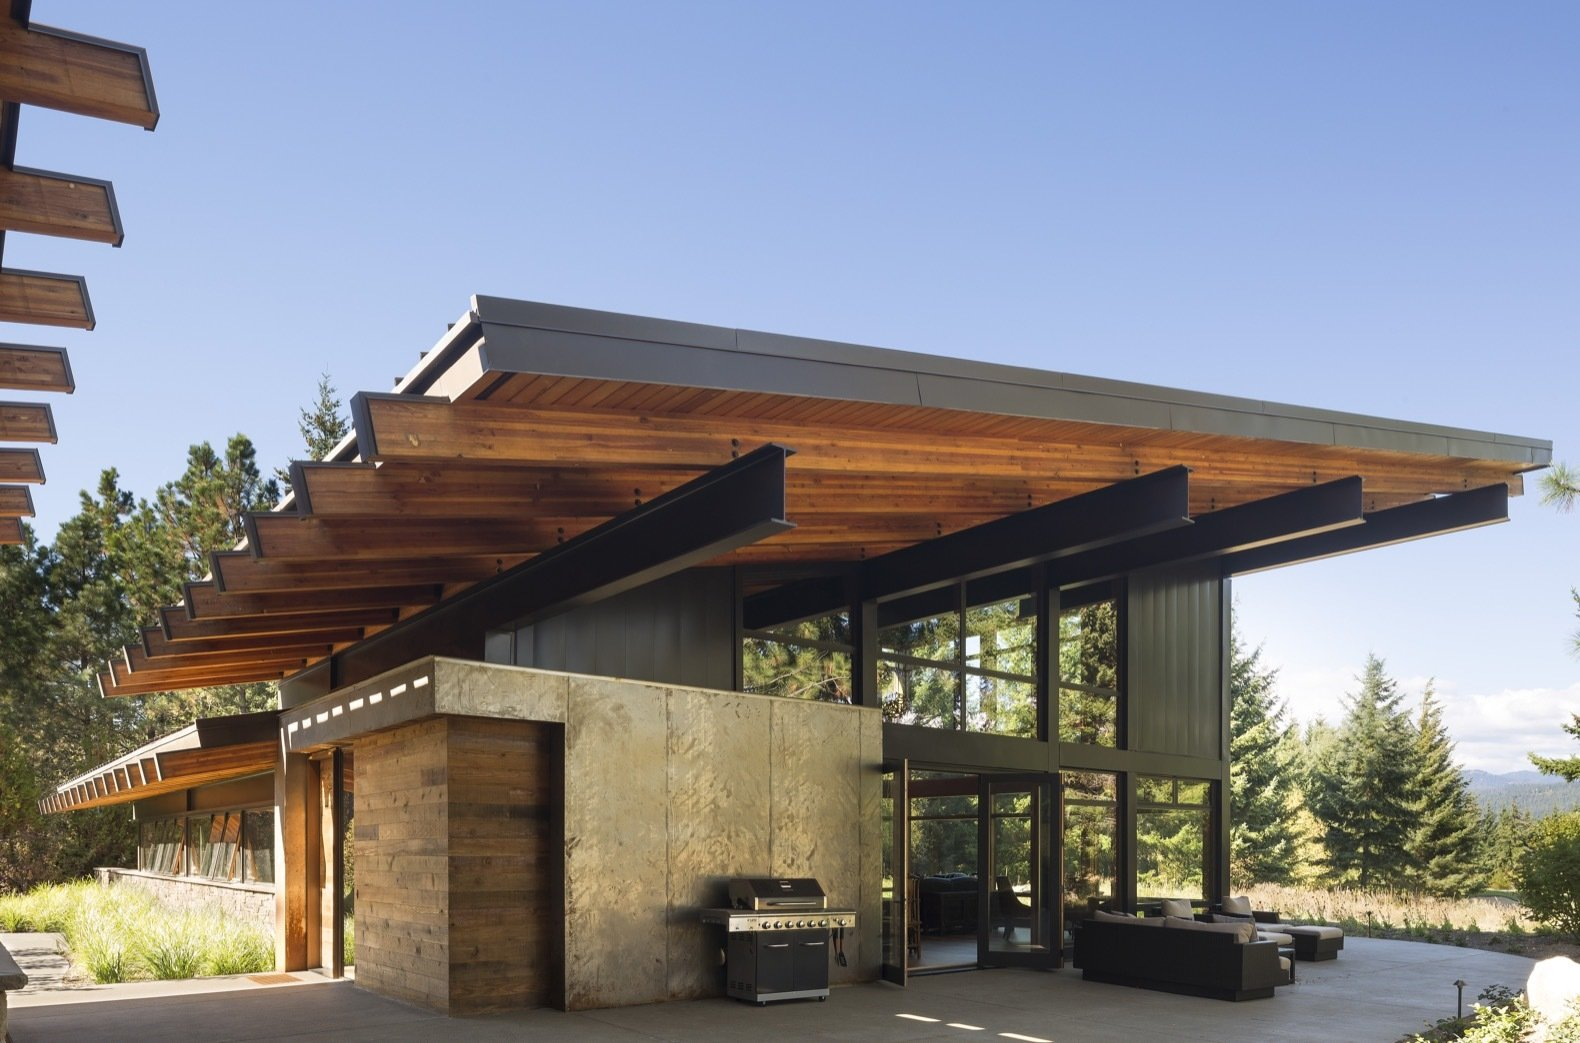 Exterior, Wood Siding Material, House Building Type, Metal Roof Material, Shed RoofLine, Glass Siding Material, and Metal Siding Material This annex houses a large recreation room as well as a guest suite.    Best Photos from A Net-Zero Home Shrugs Off Winter With Solar-Energy Comfort